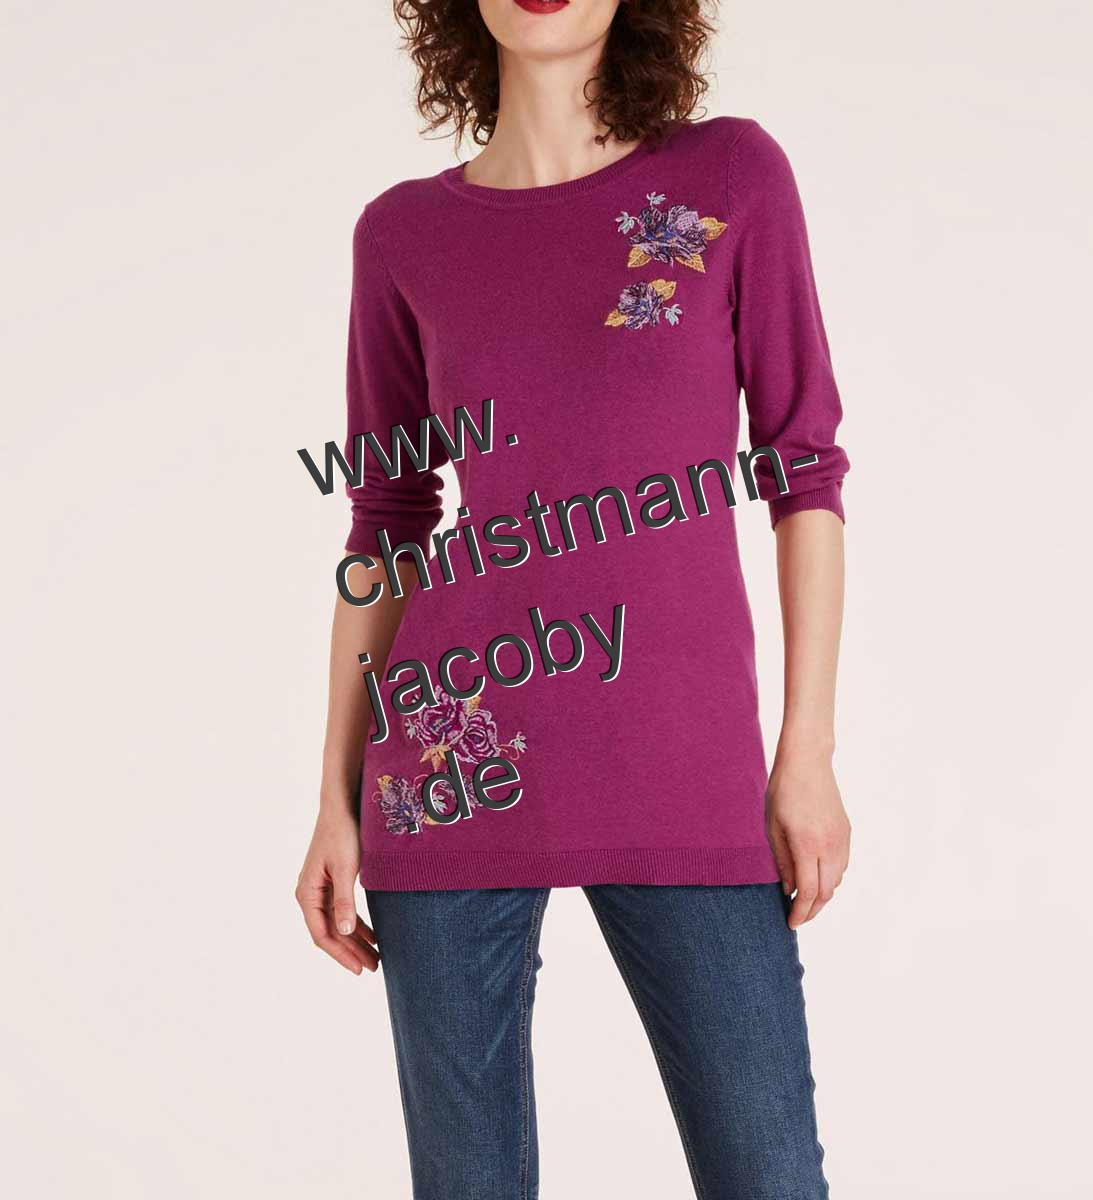 Knit sweater with embroidery, berry